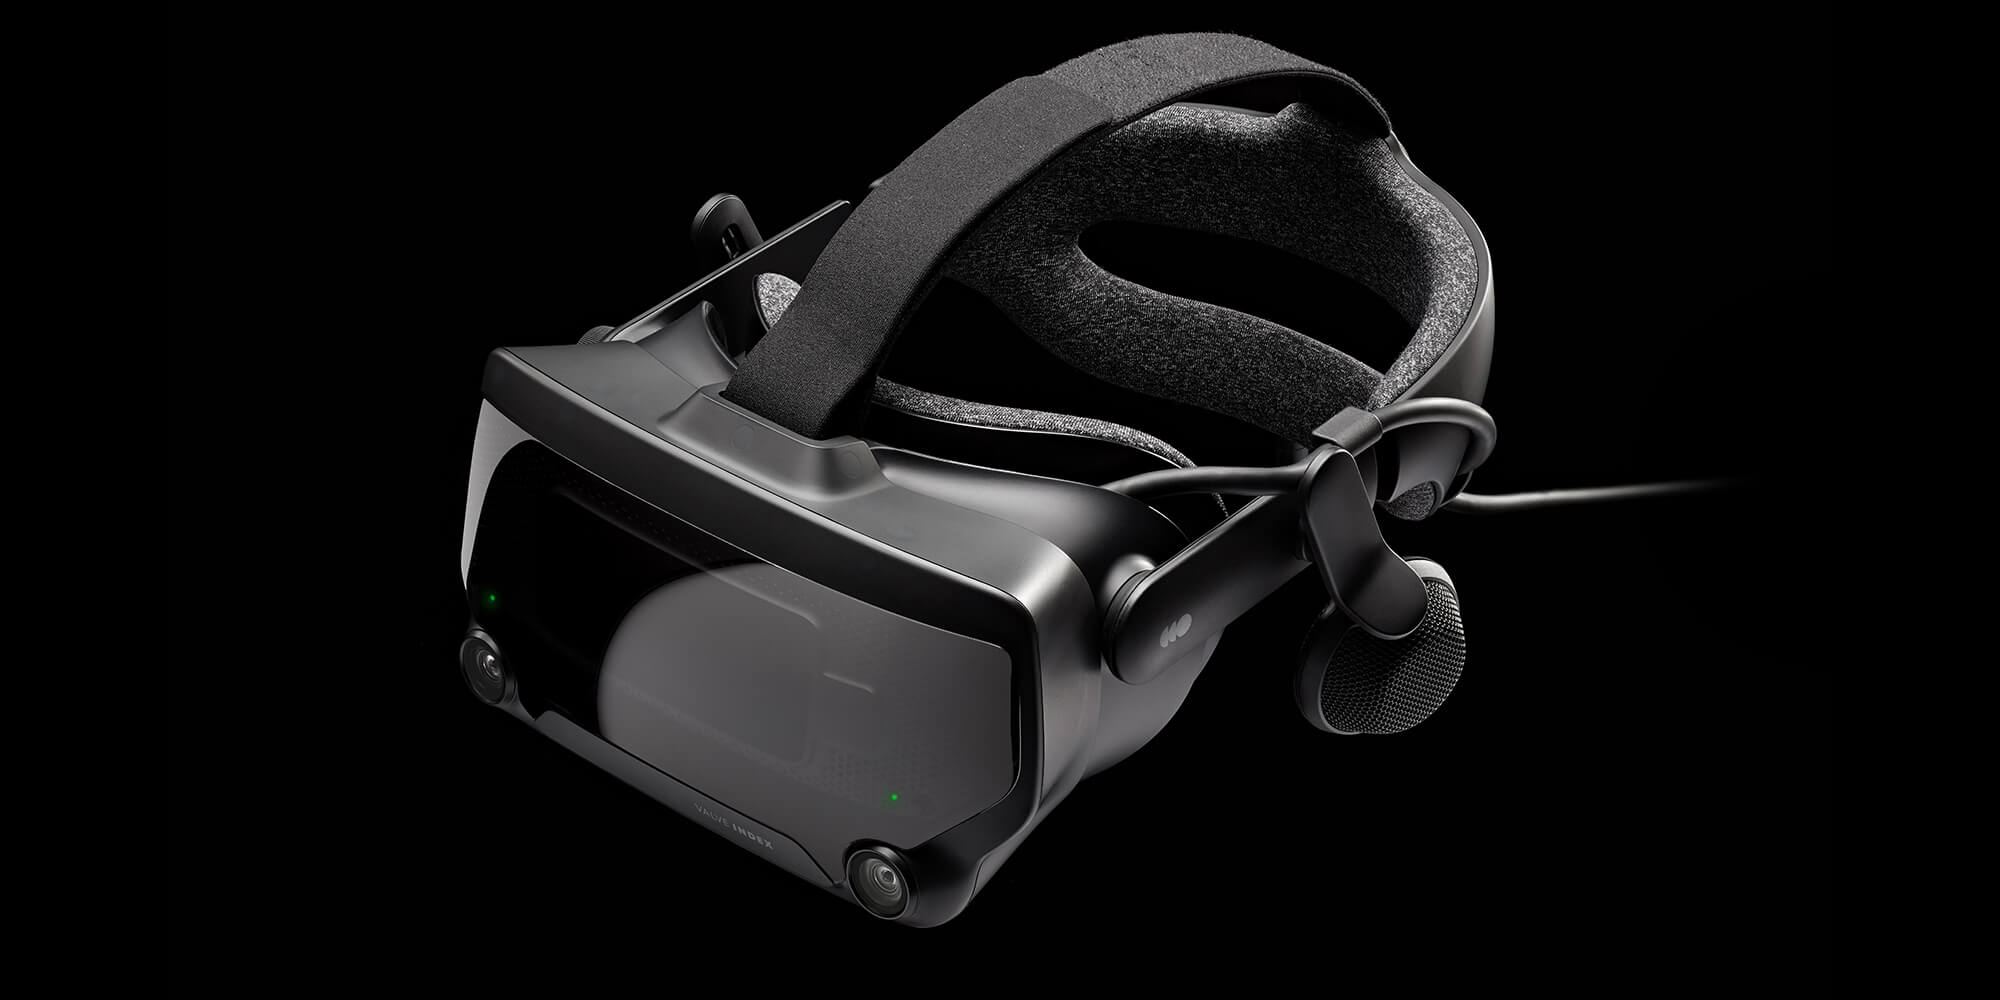 VR Headset For Valve Scheduled For Shipping In June, Pre-Orders And Specs Available Next Month